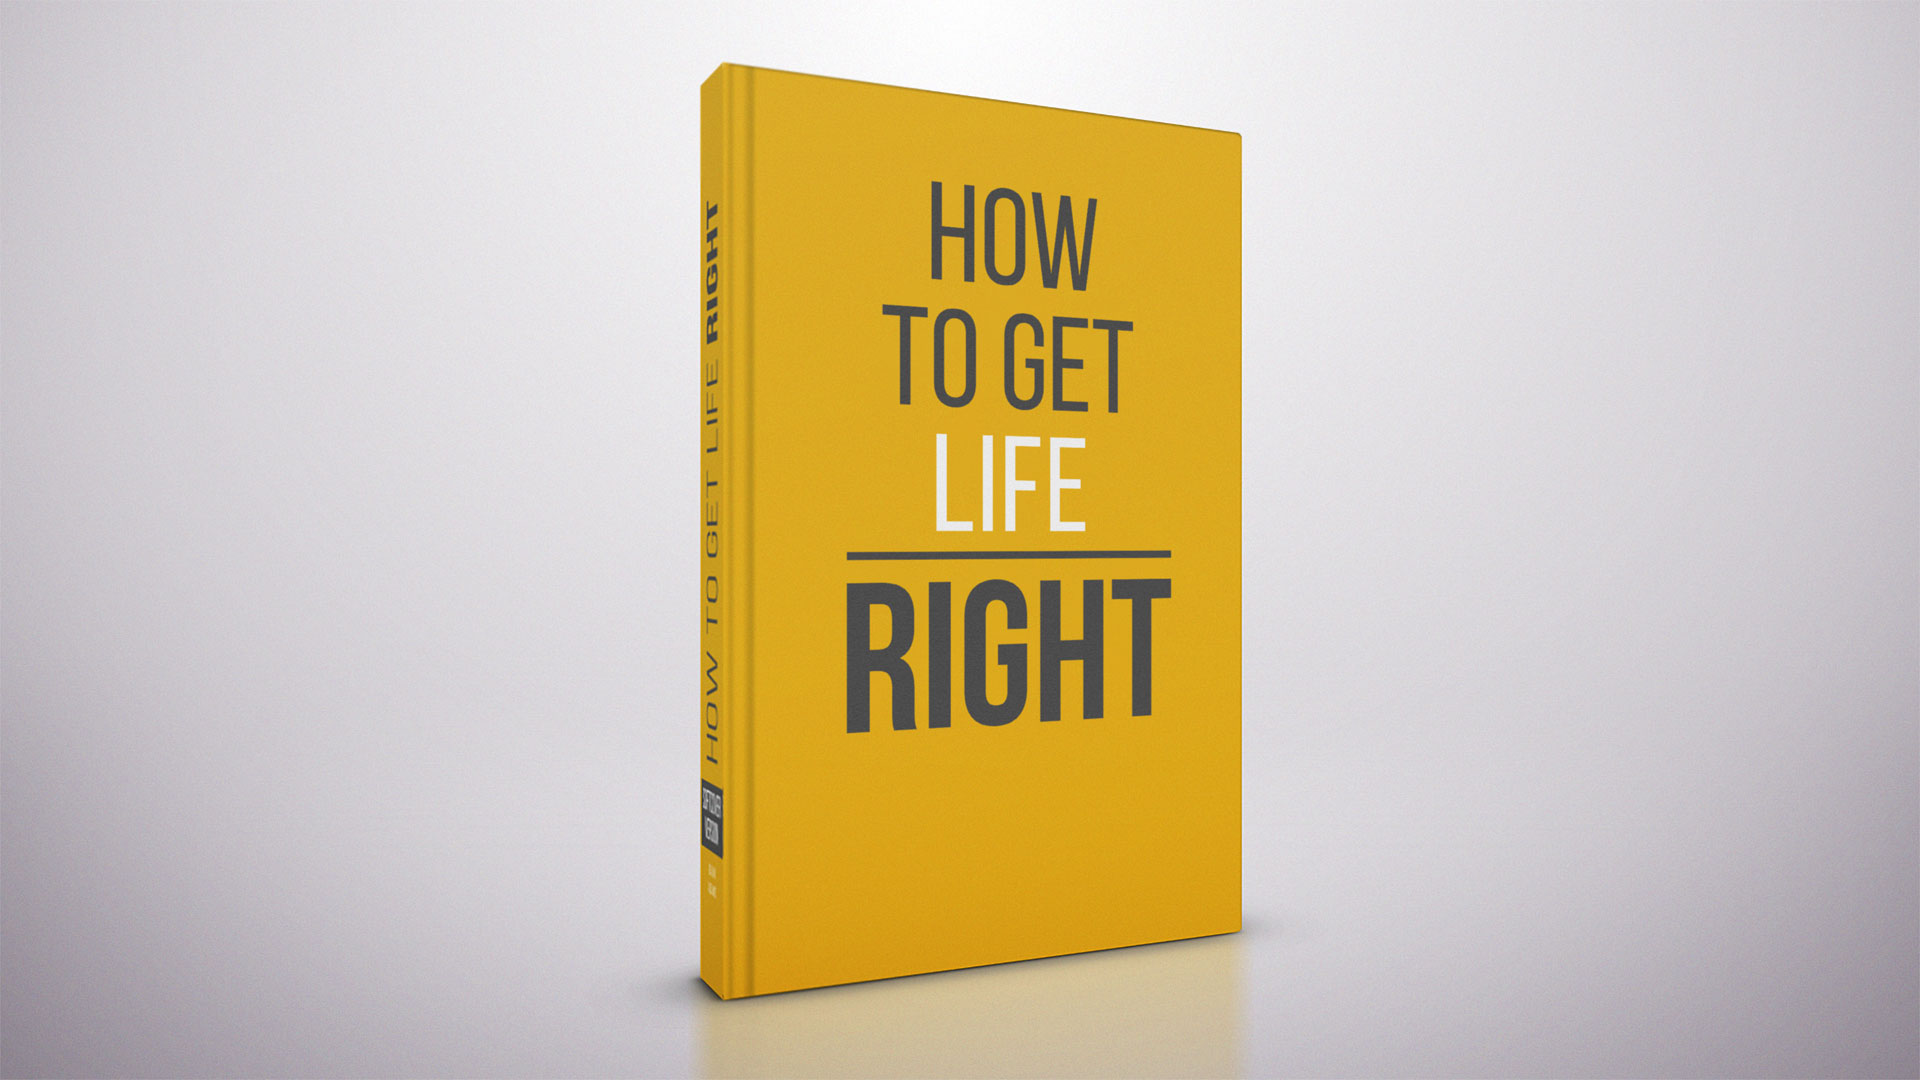 How to Get Life Right